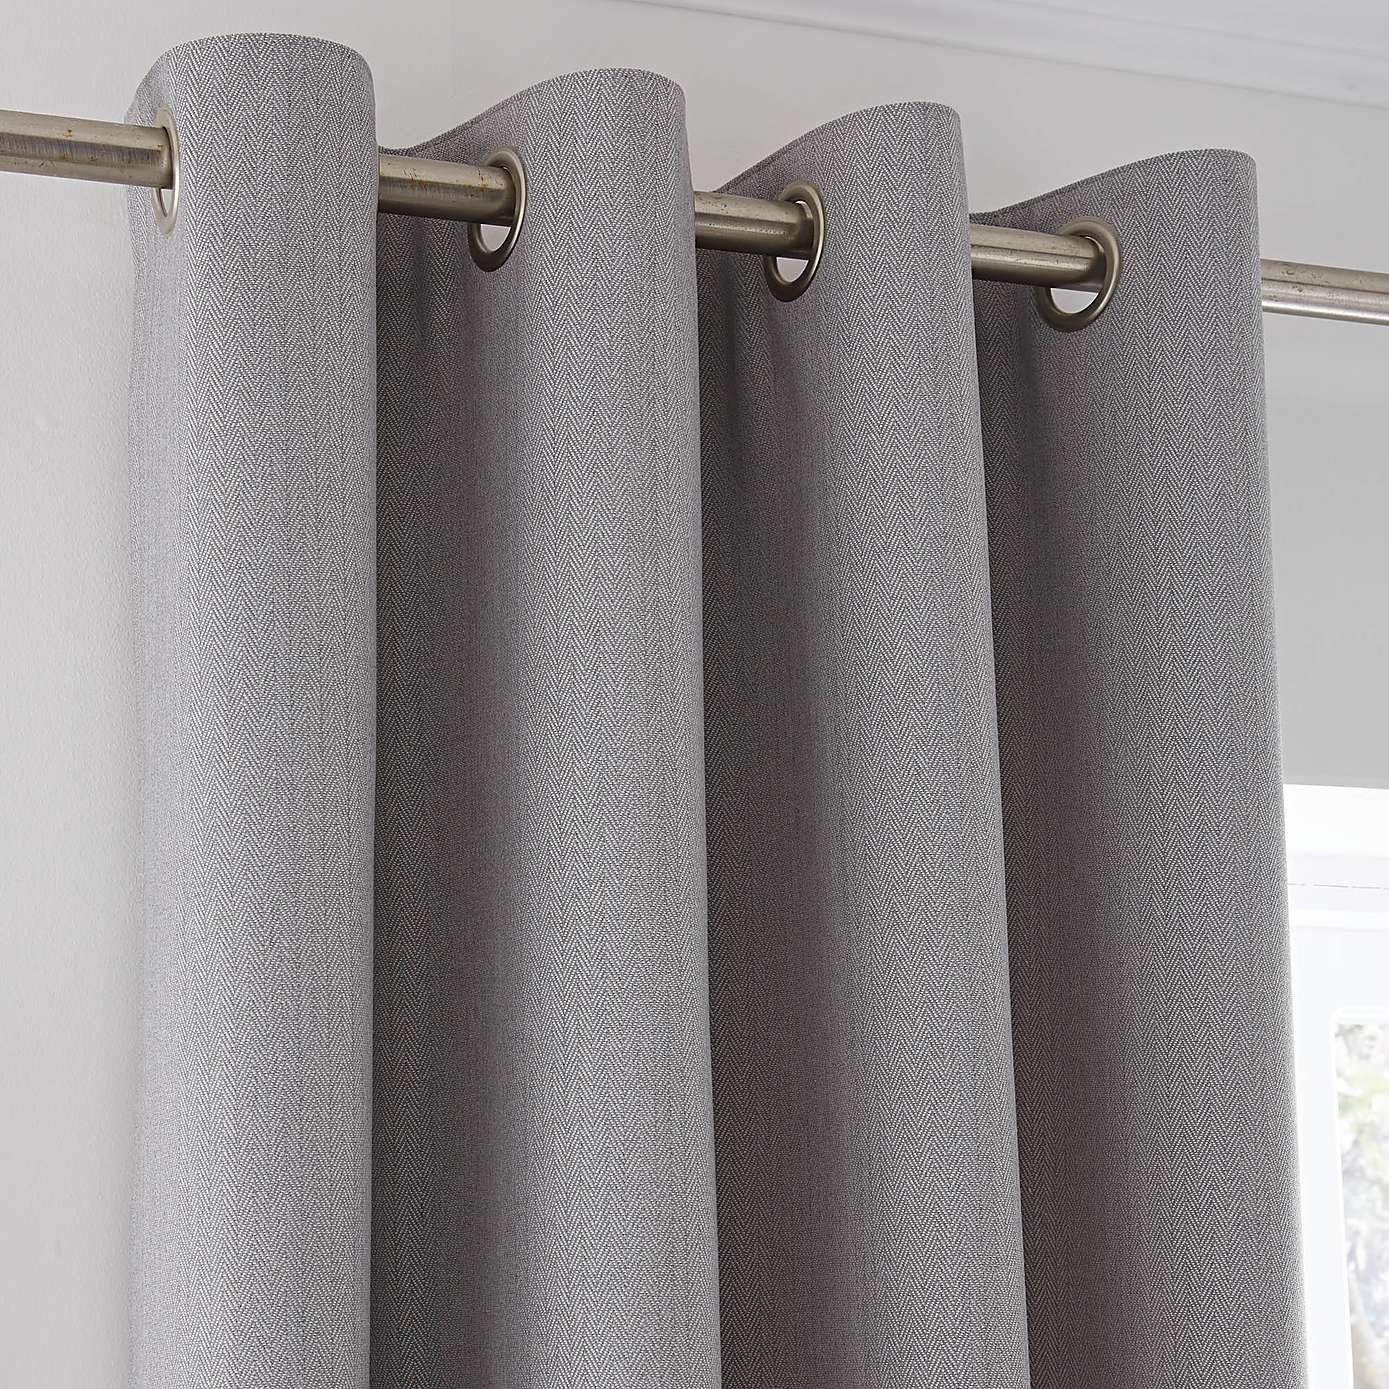 40a83a39f0b £85 - Hayden Grey Lined Eyelet Curtains